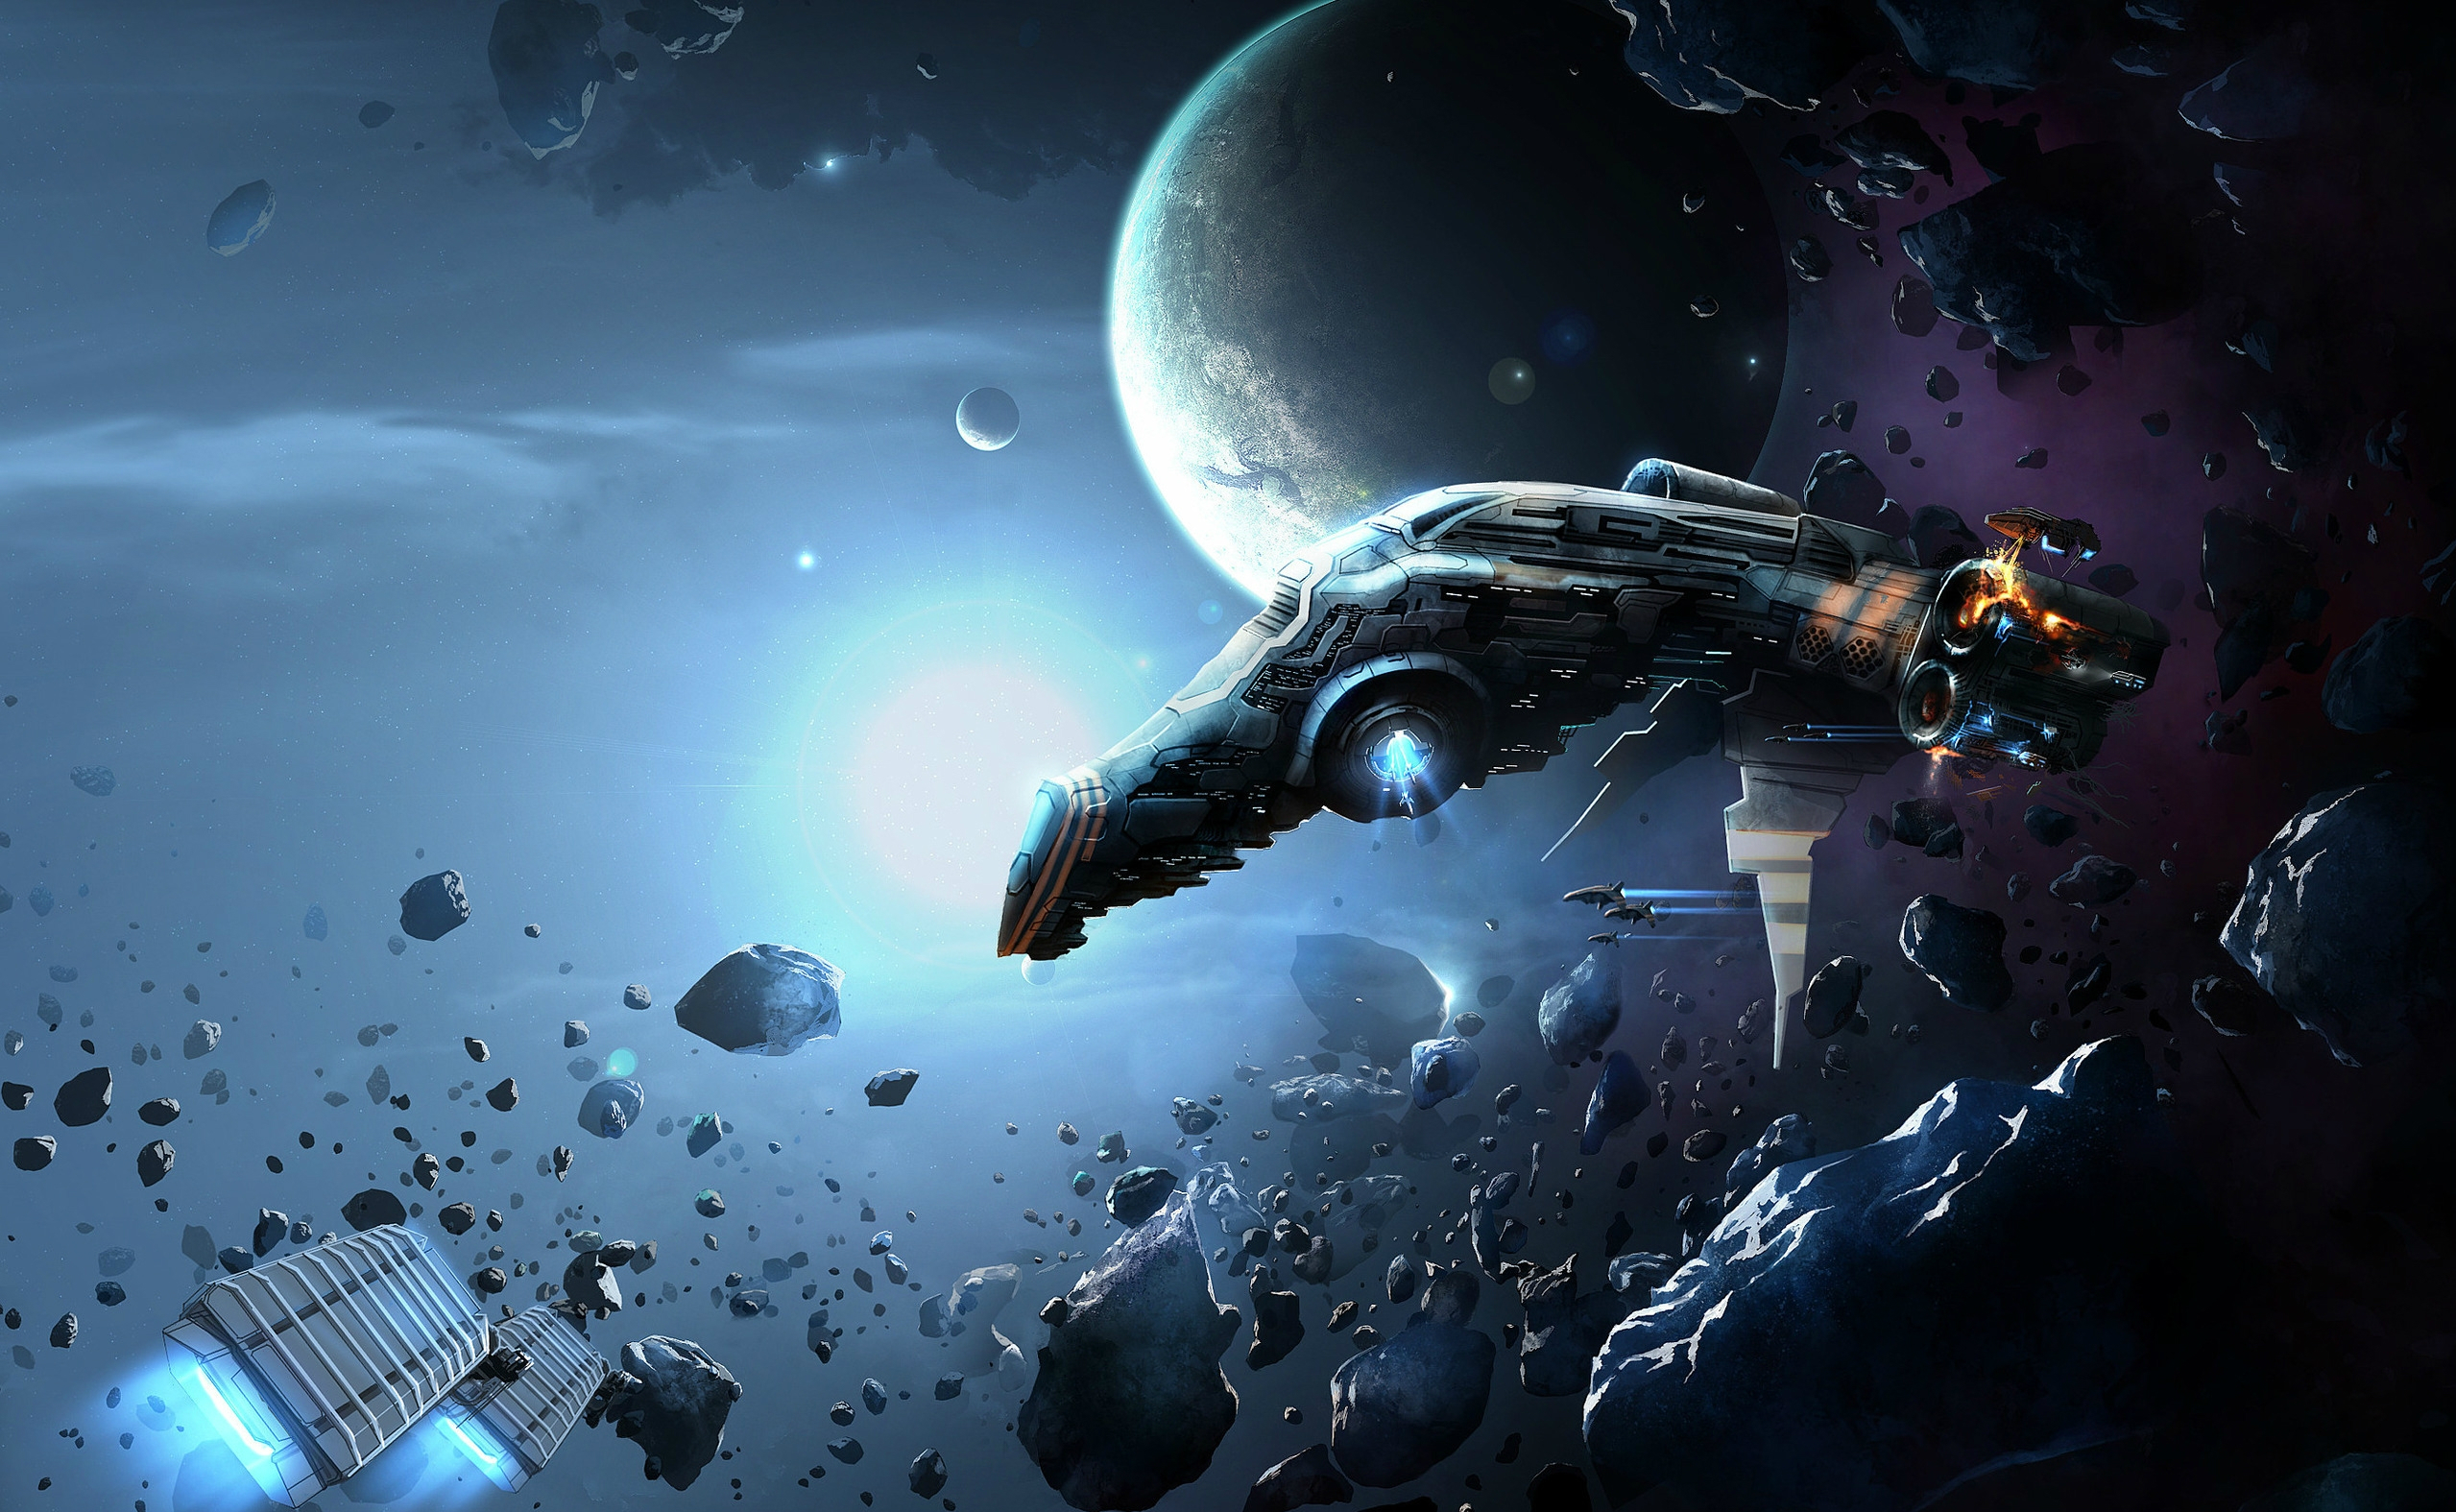 Eve Online Wallpaper HD 1920x1080